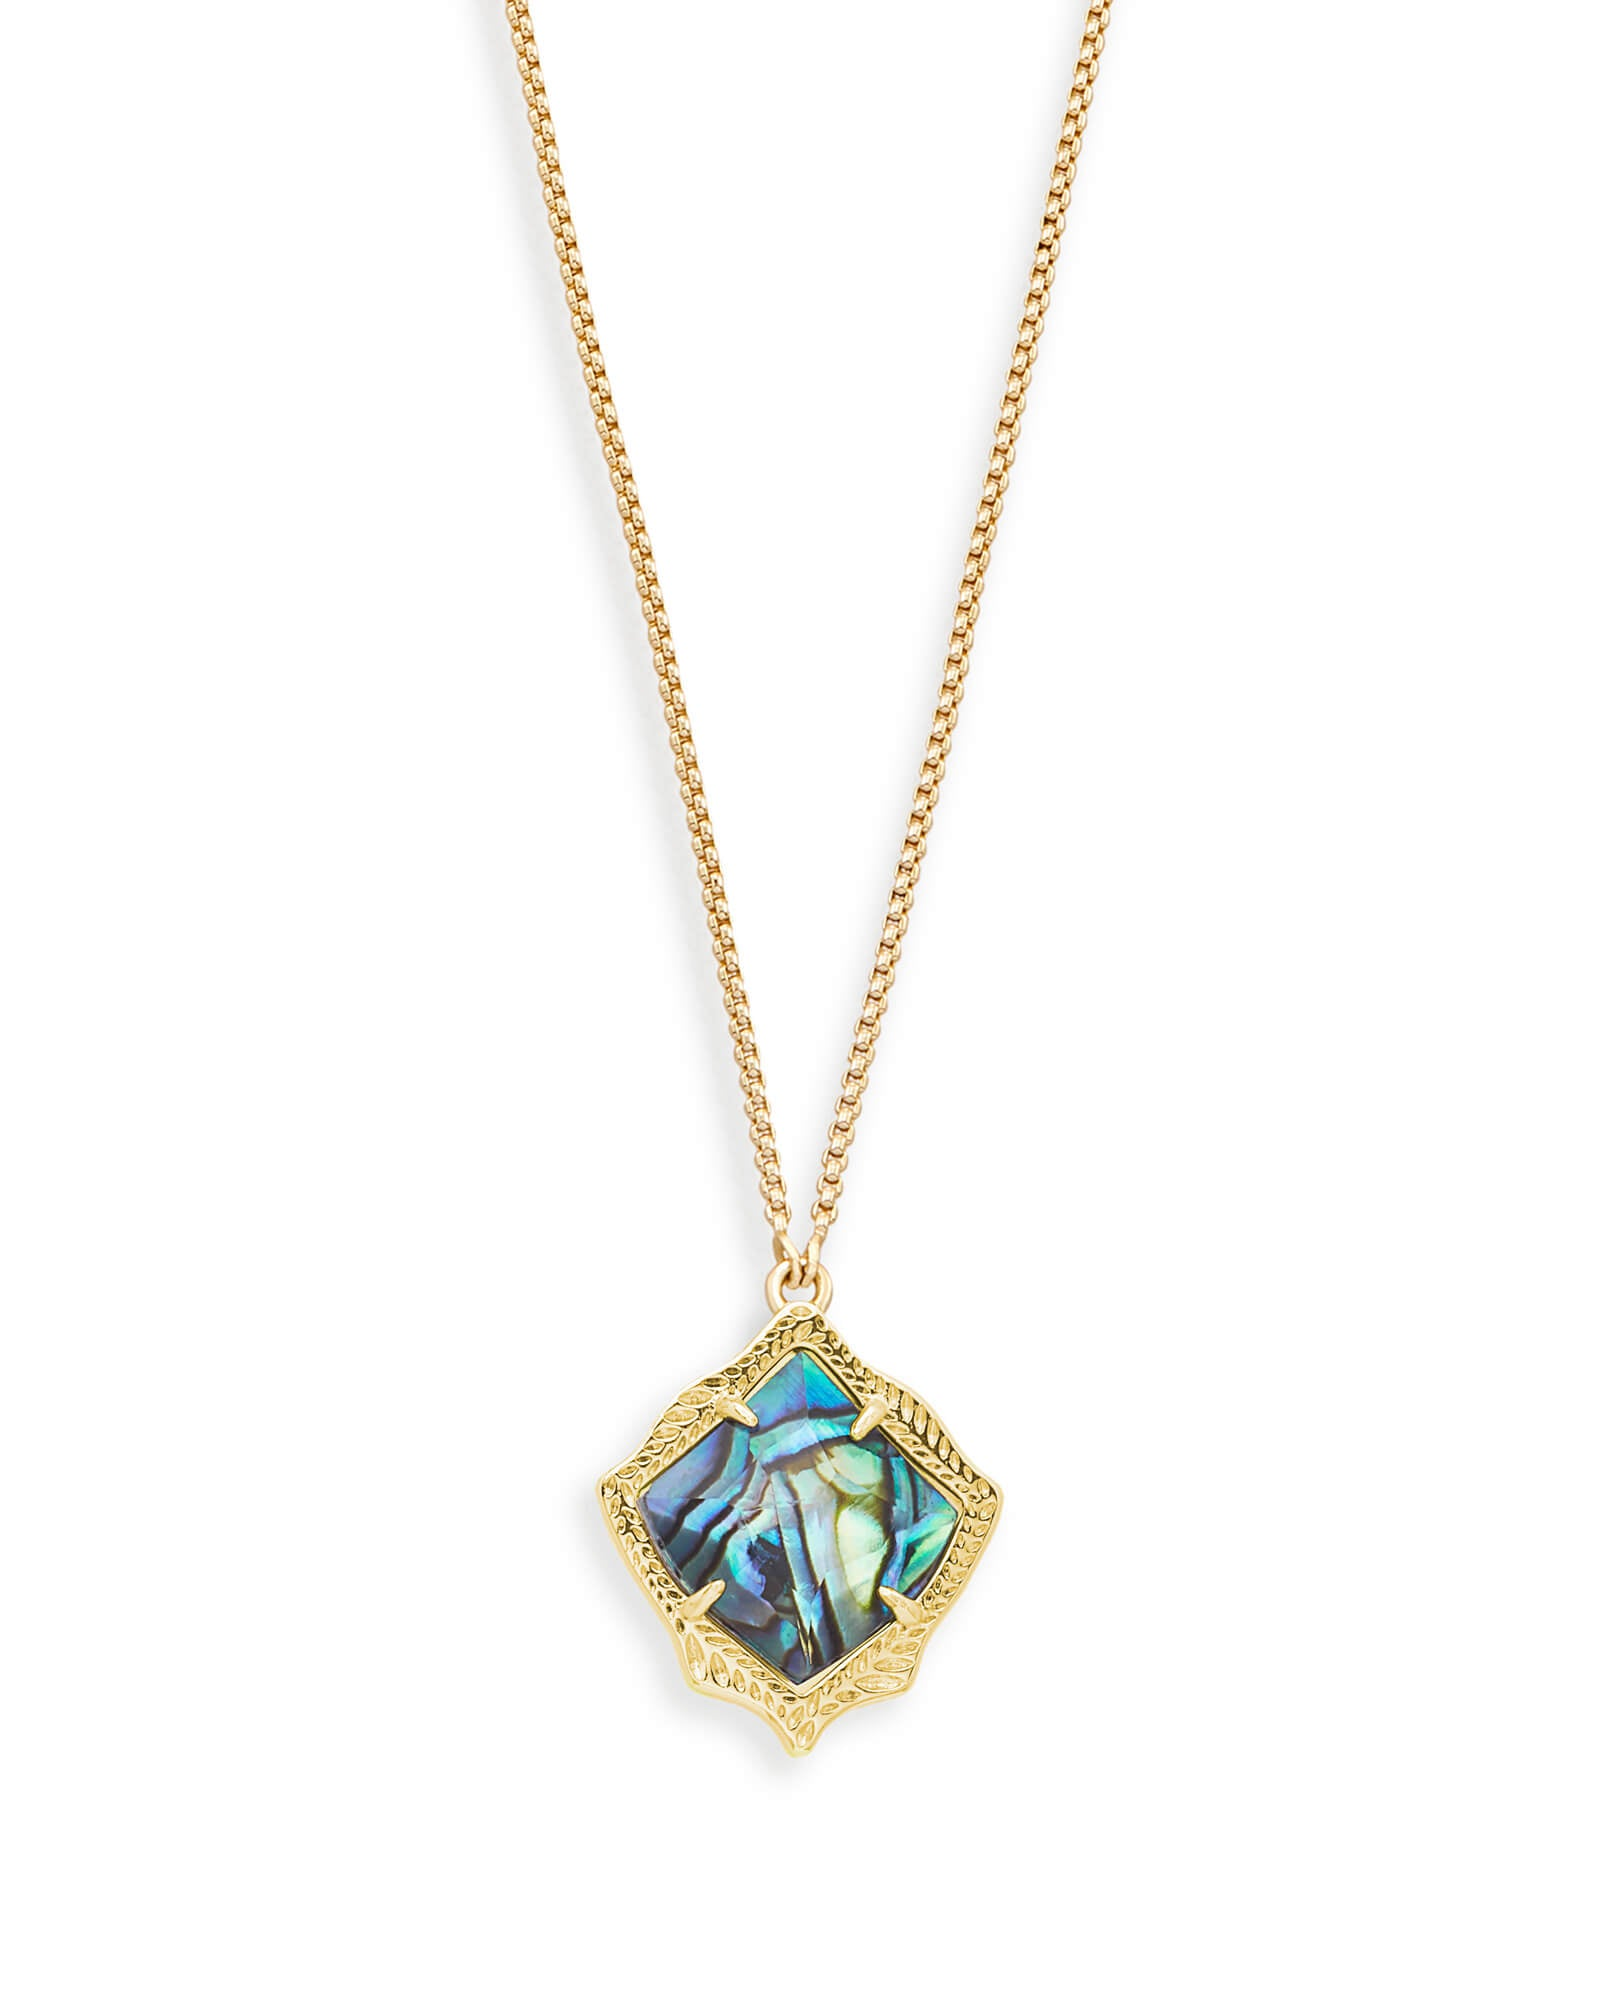 Kendra Scott Kacey Gold Long Pendant Necklace In Abalone Shell